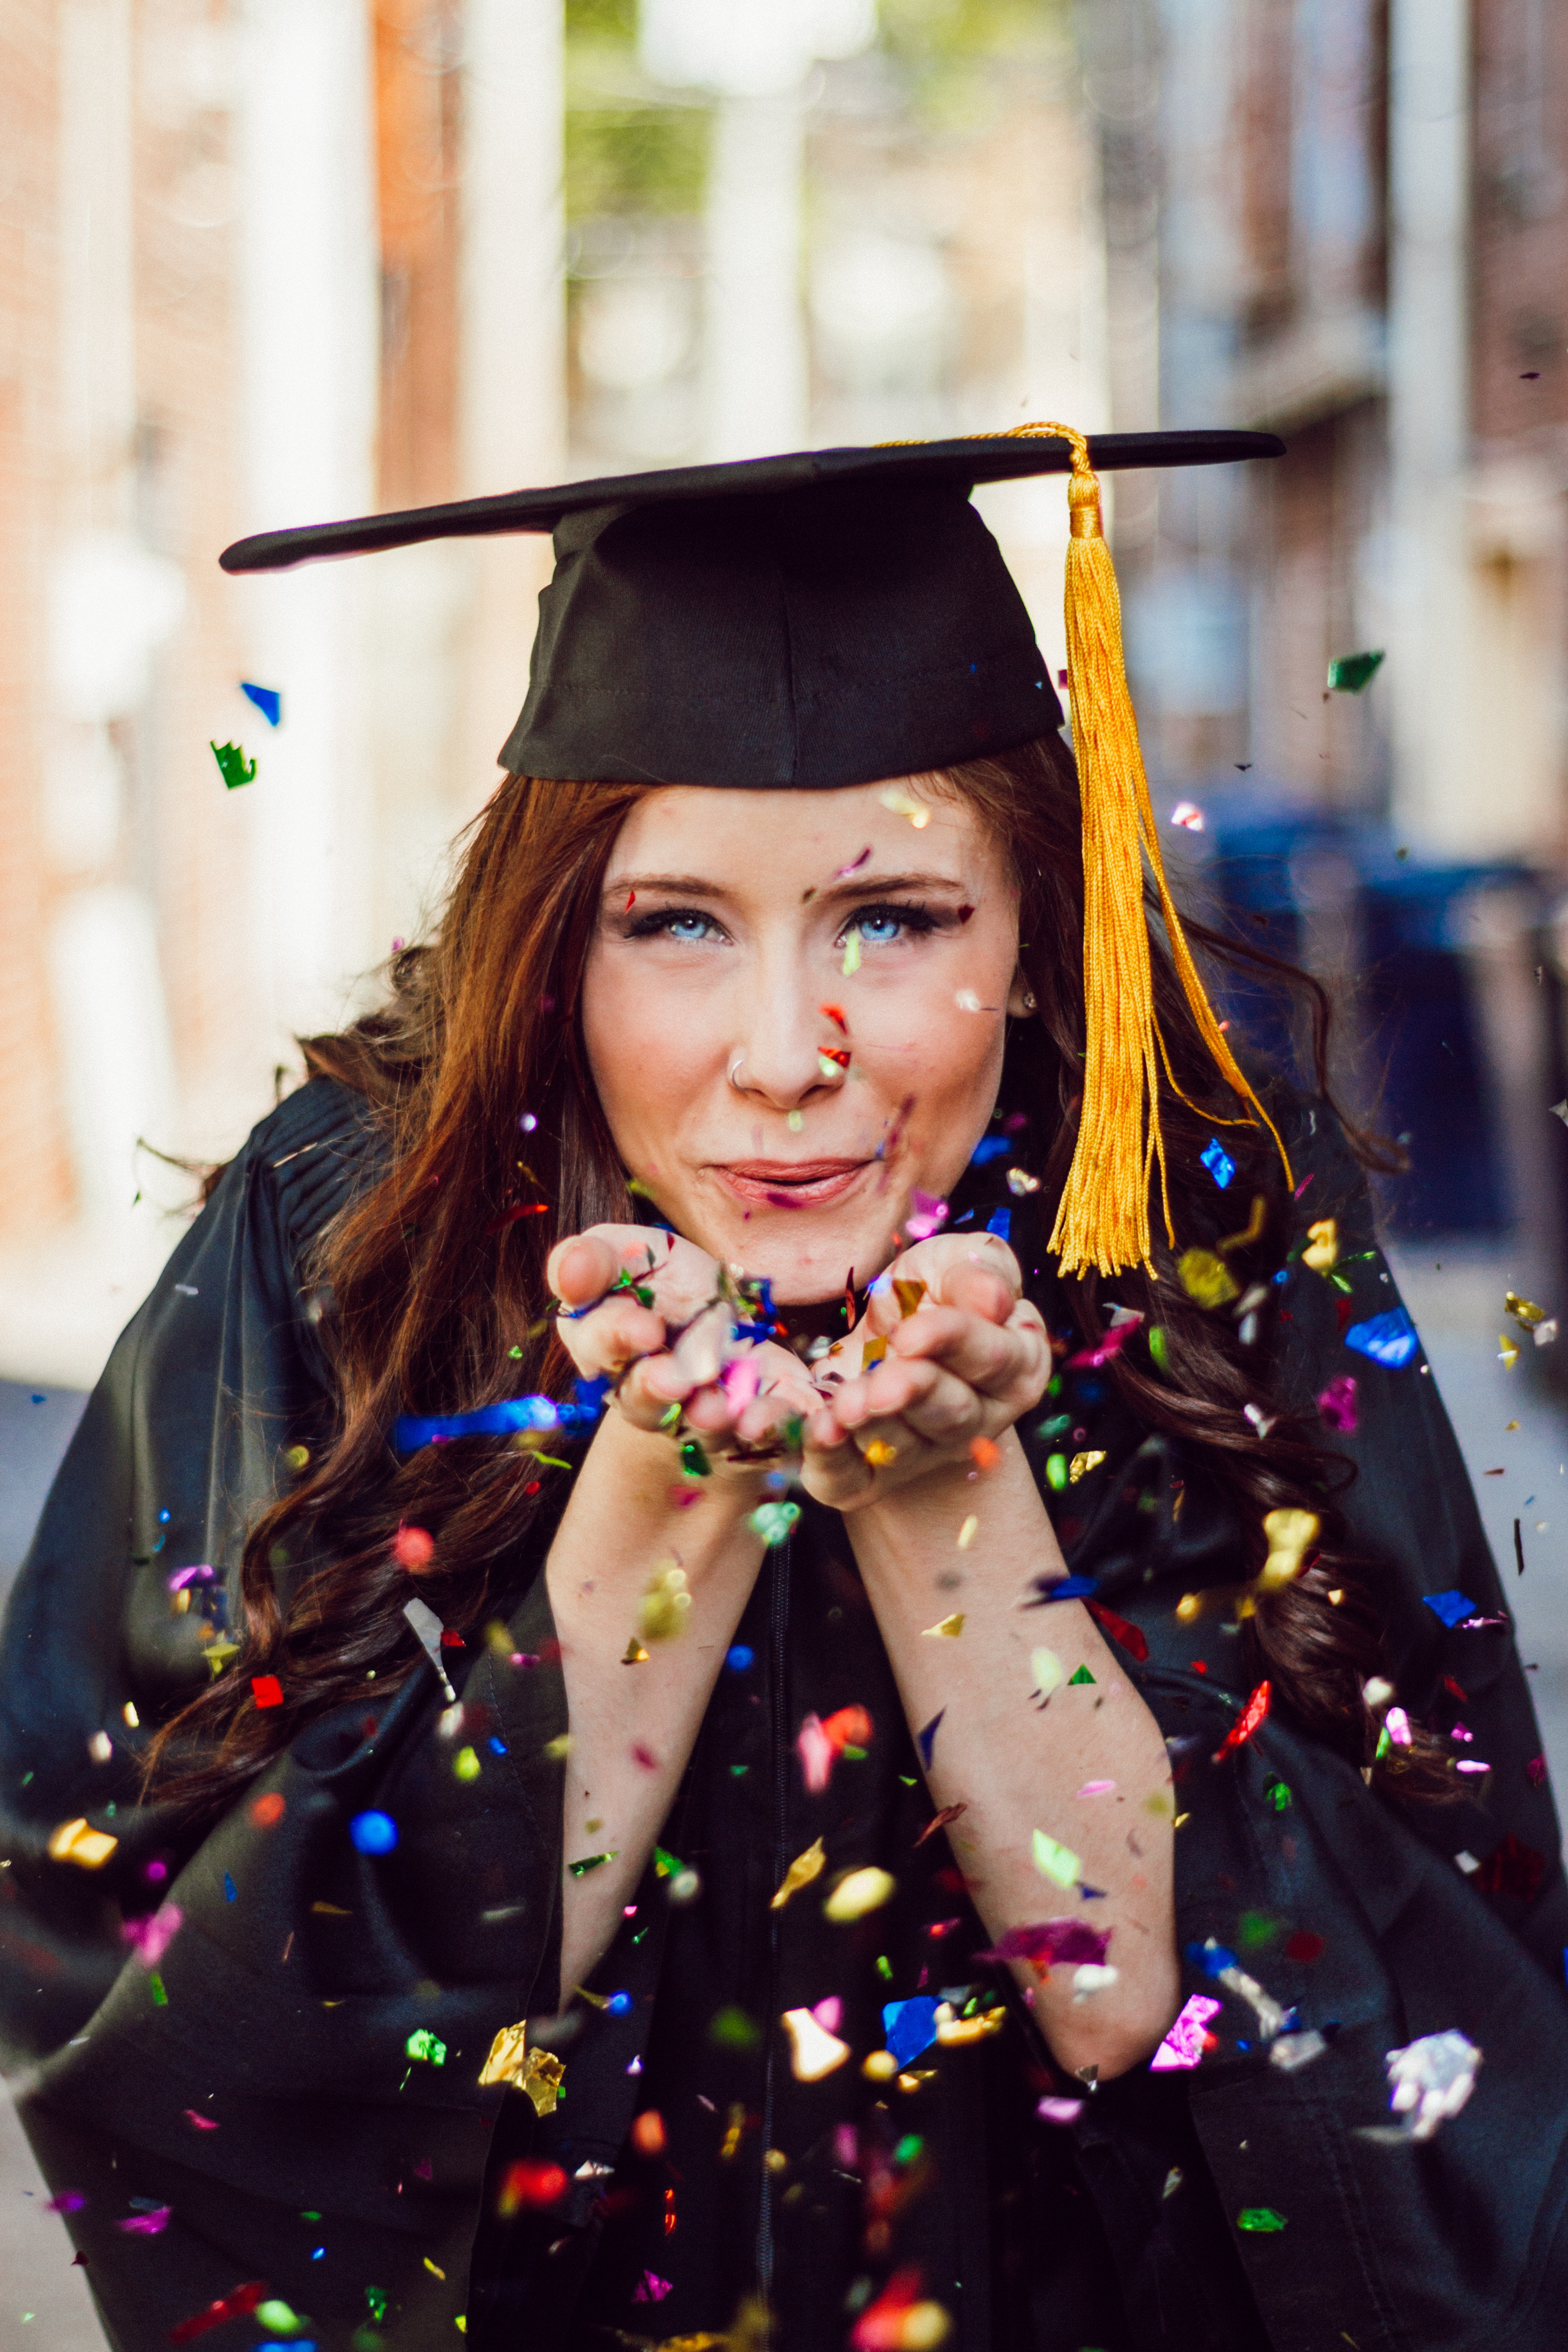 The IUM Graduation 2019 | Monaco Students - Student blowing confetti - Miells